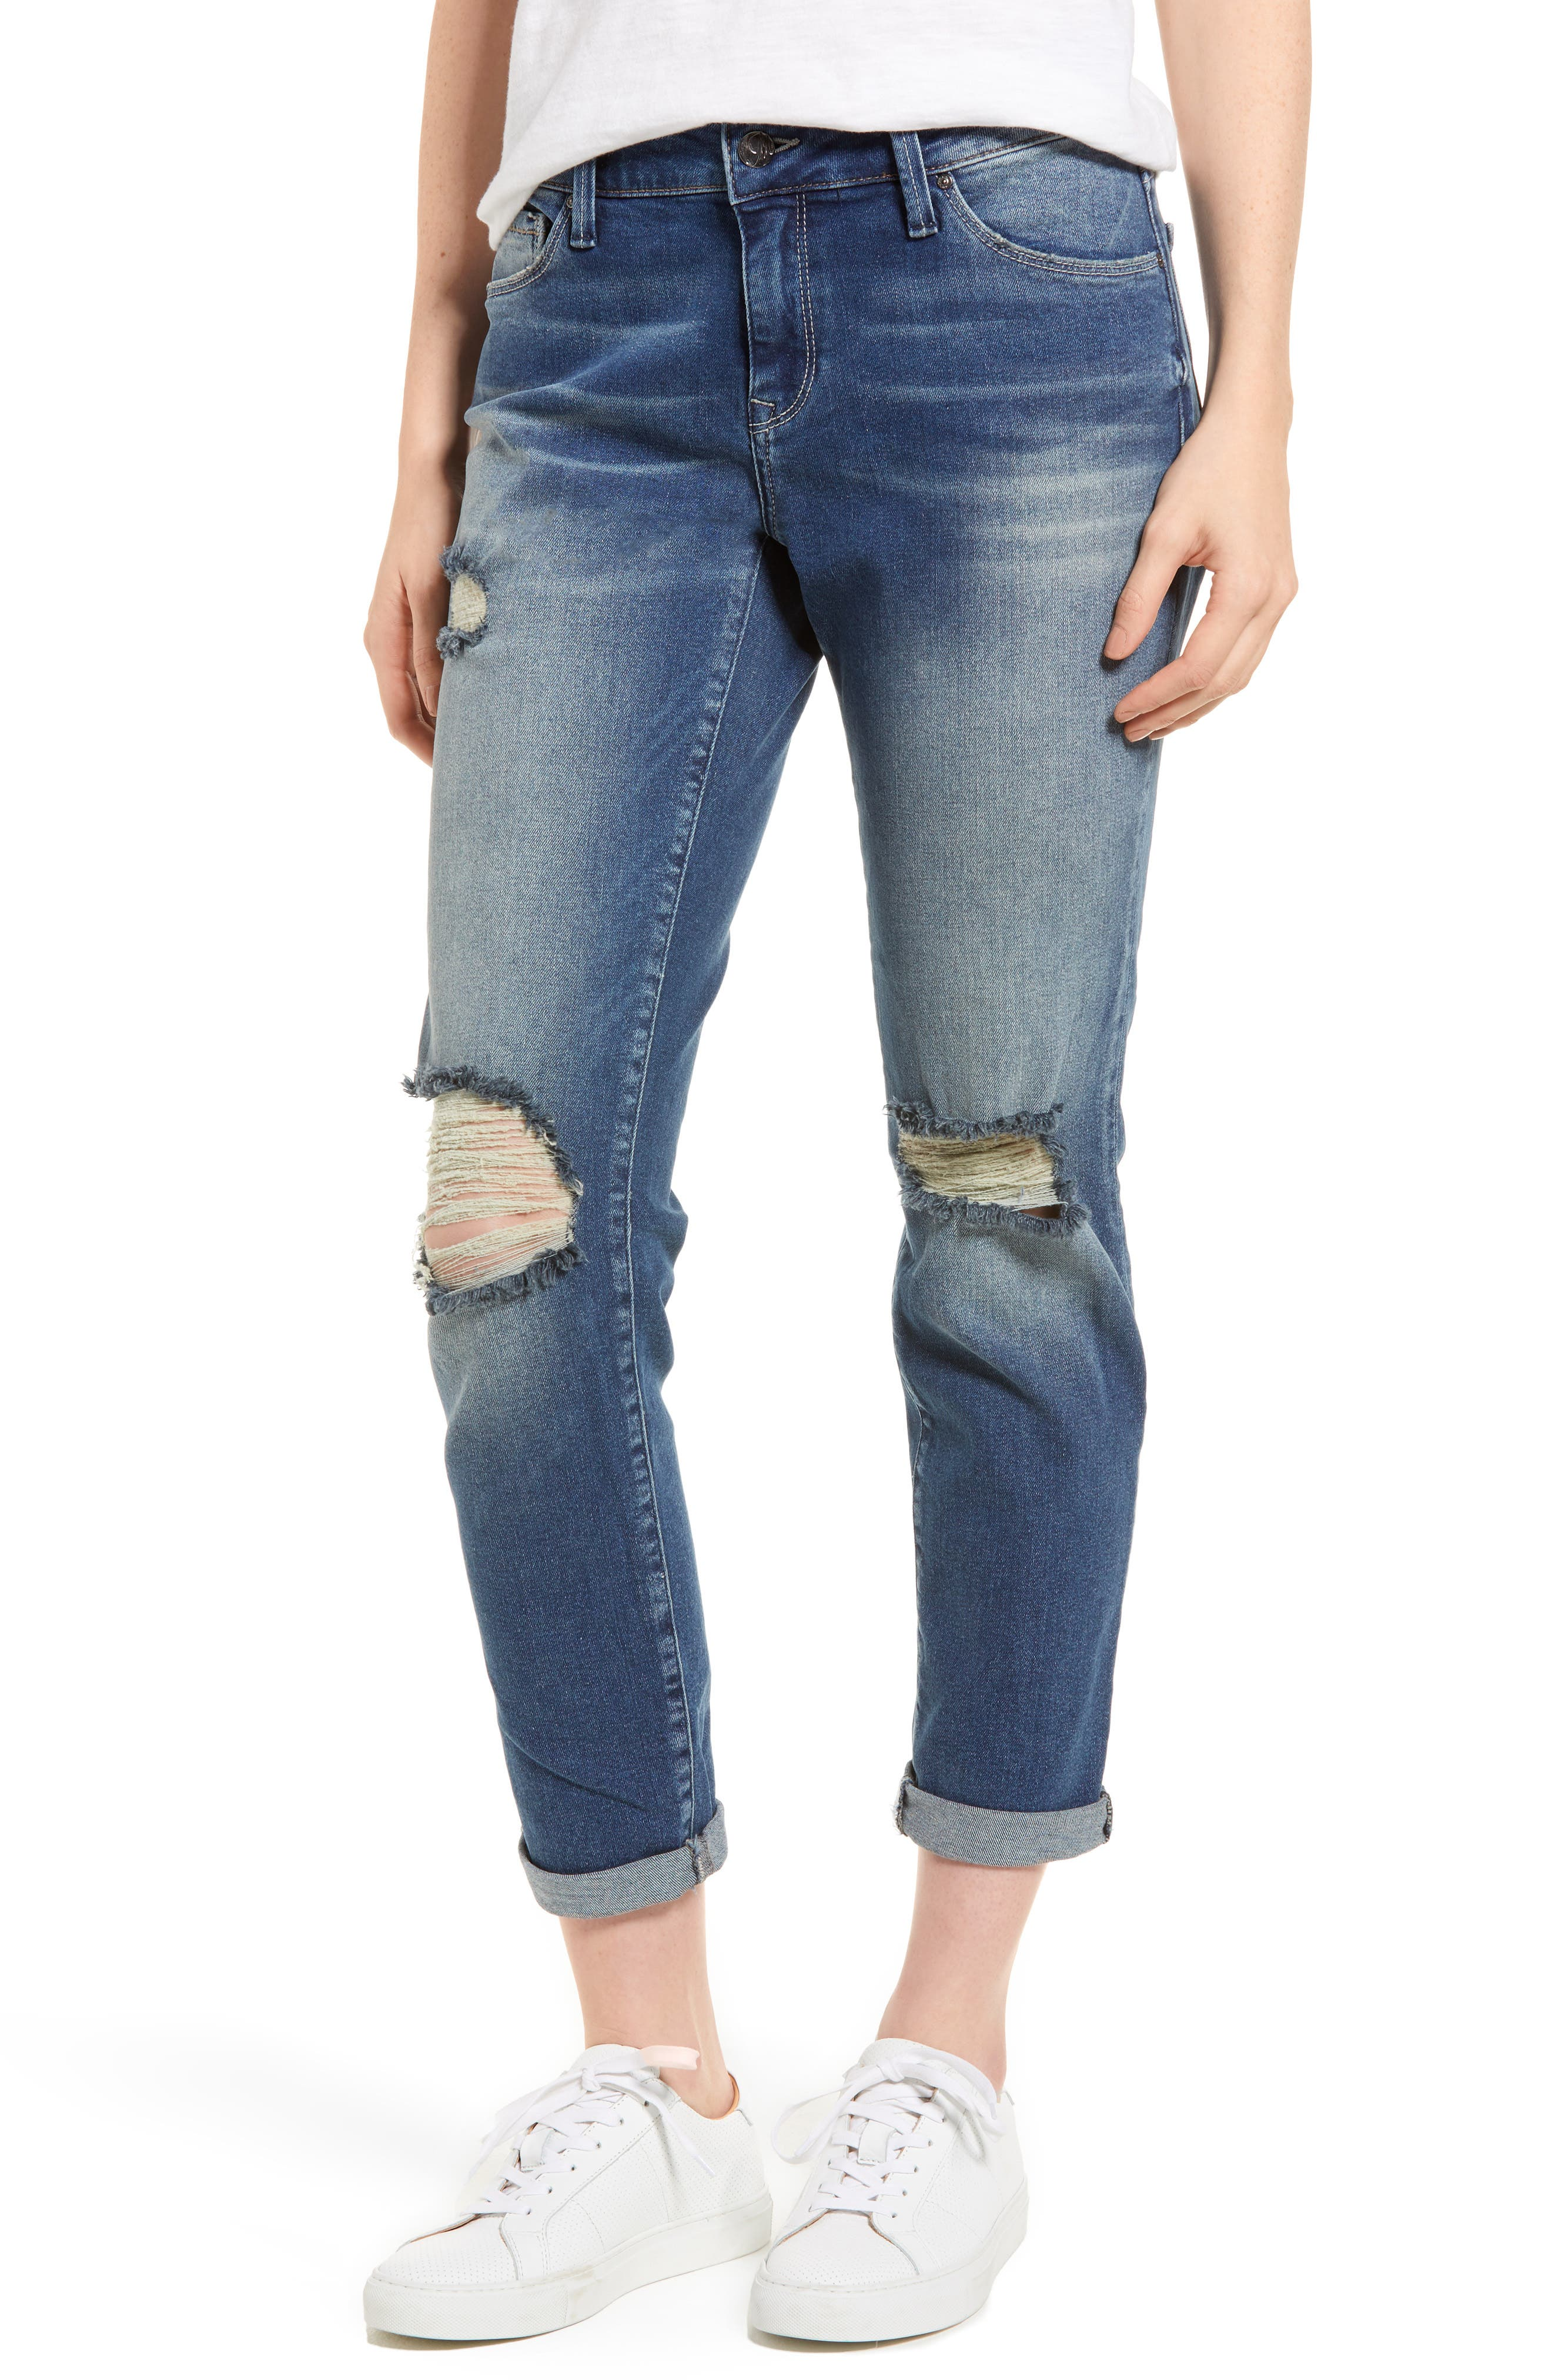 Ada Ripped Boyfriend Jeans,                         Main,                         color, Mid Ripped Vintage